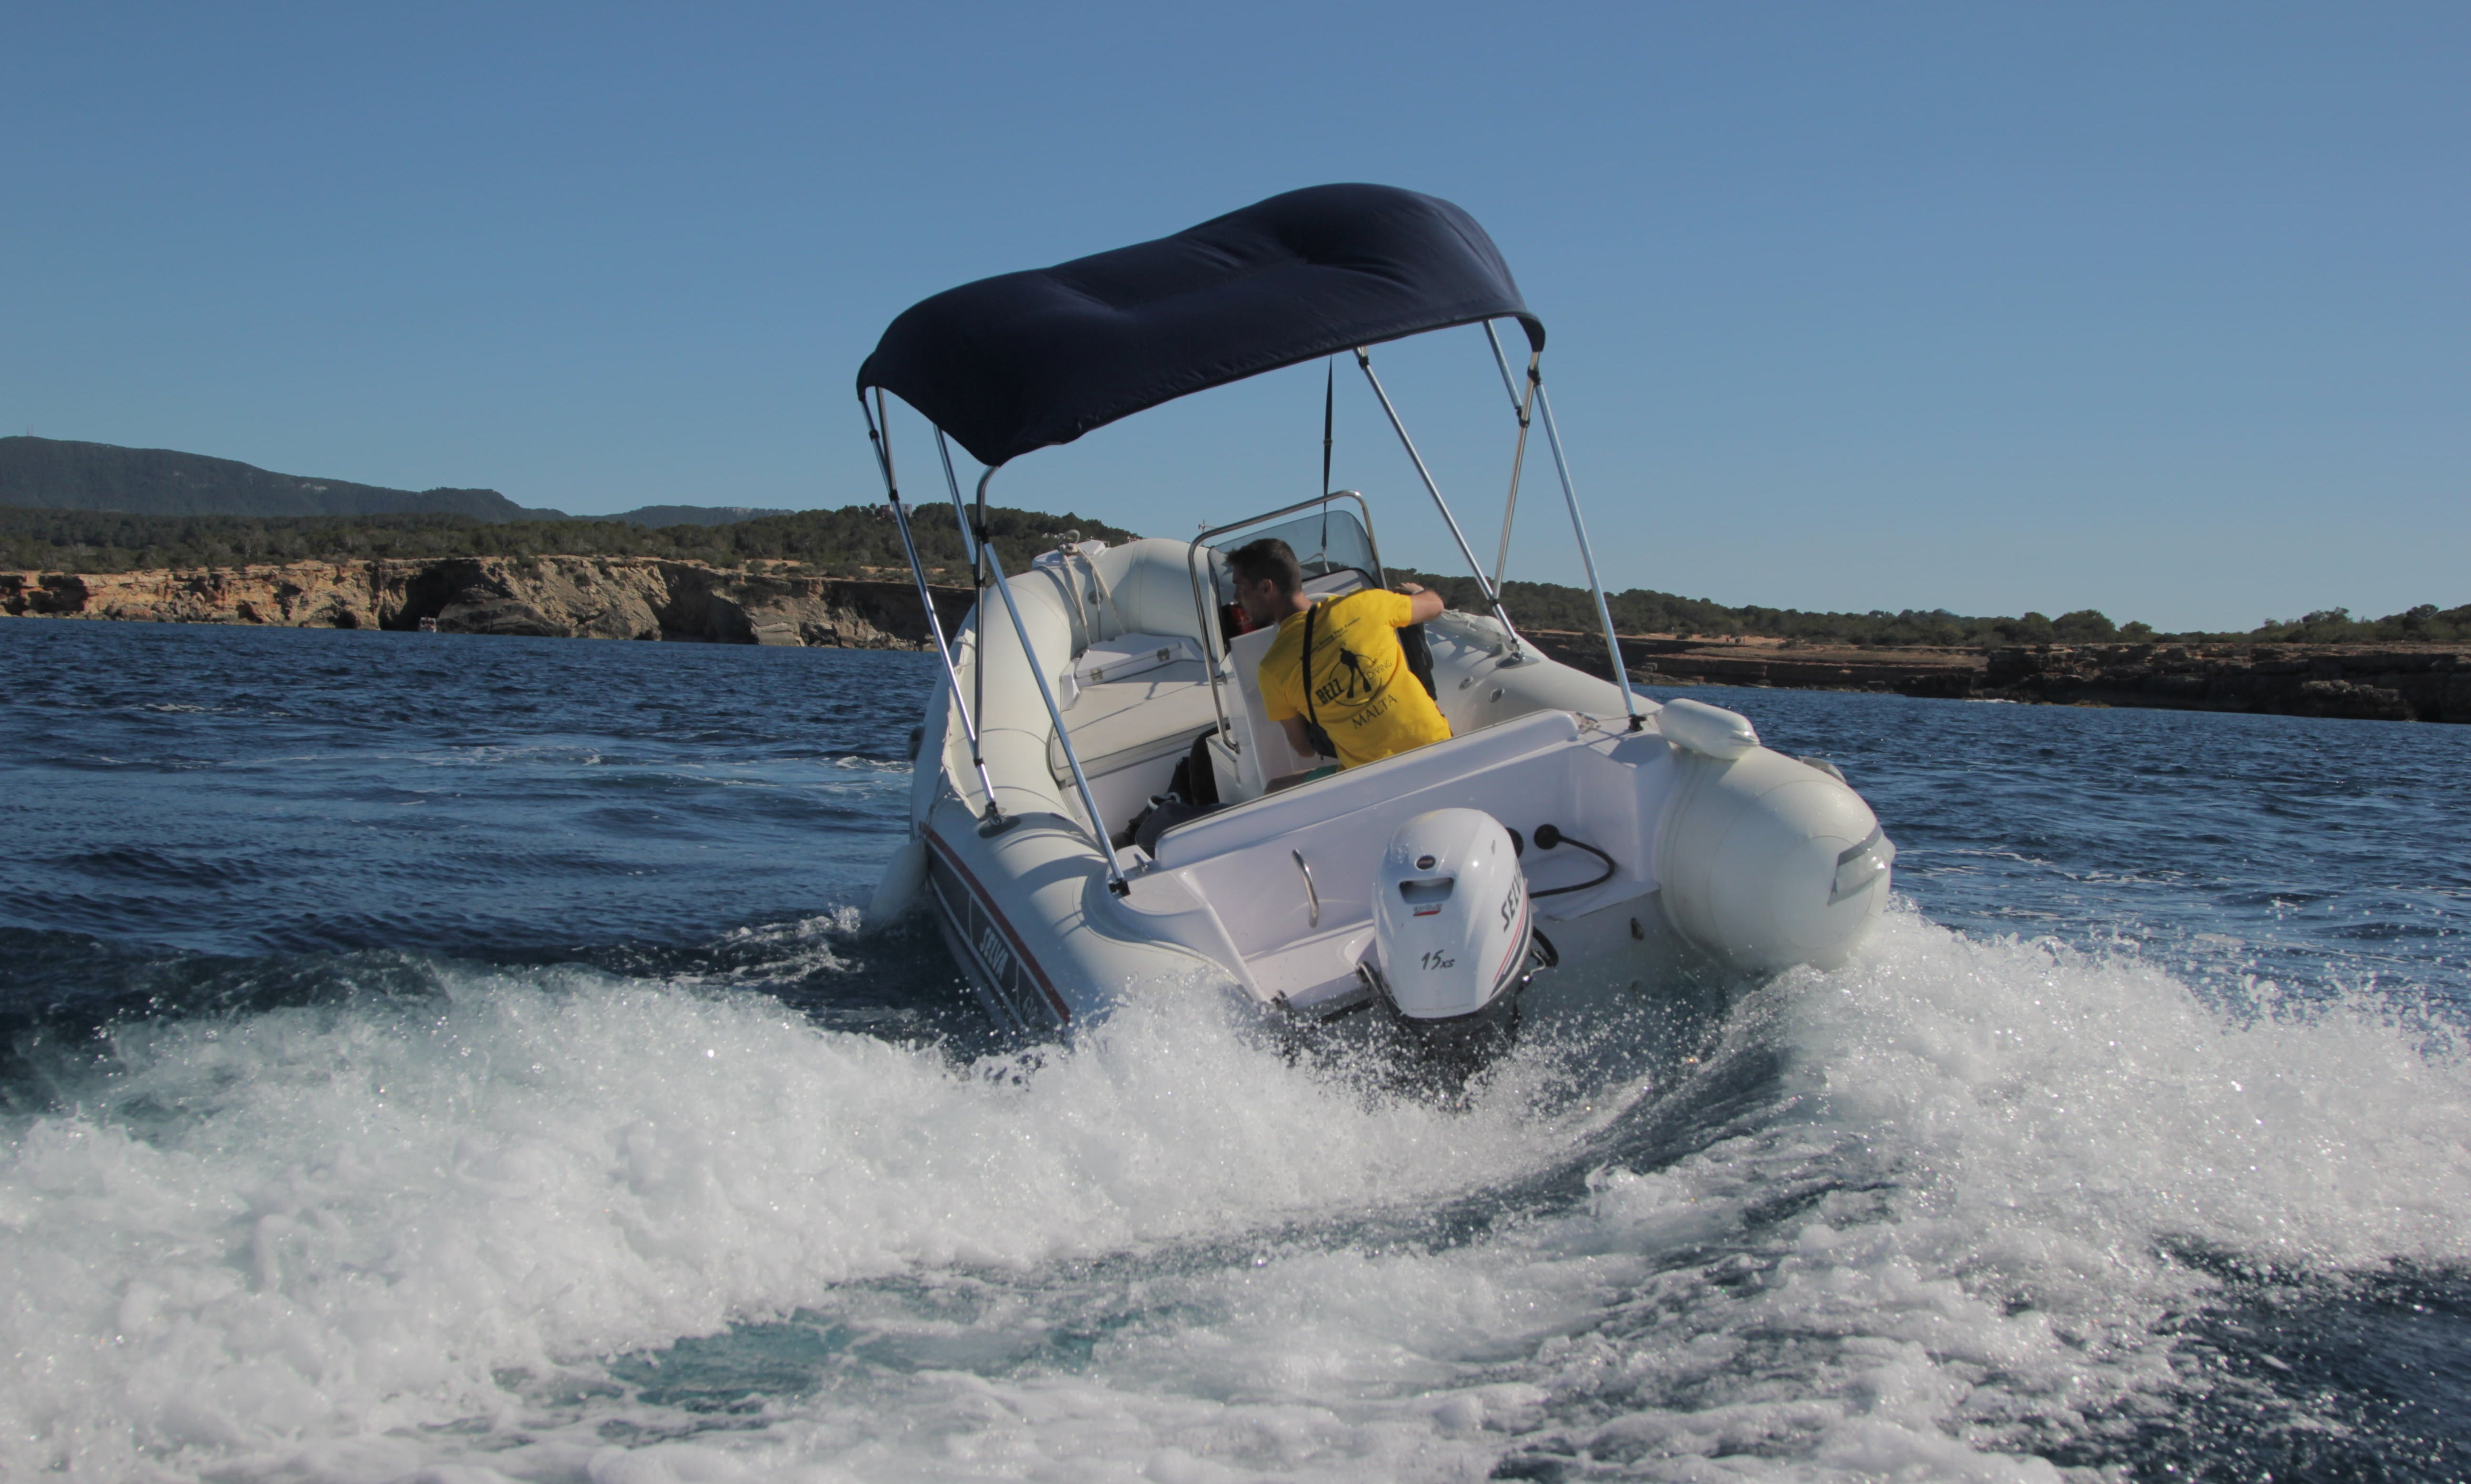 Enjoy an island hopping experience with this RIB rental in Sant Antoni de Portmany, Spain